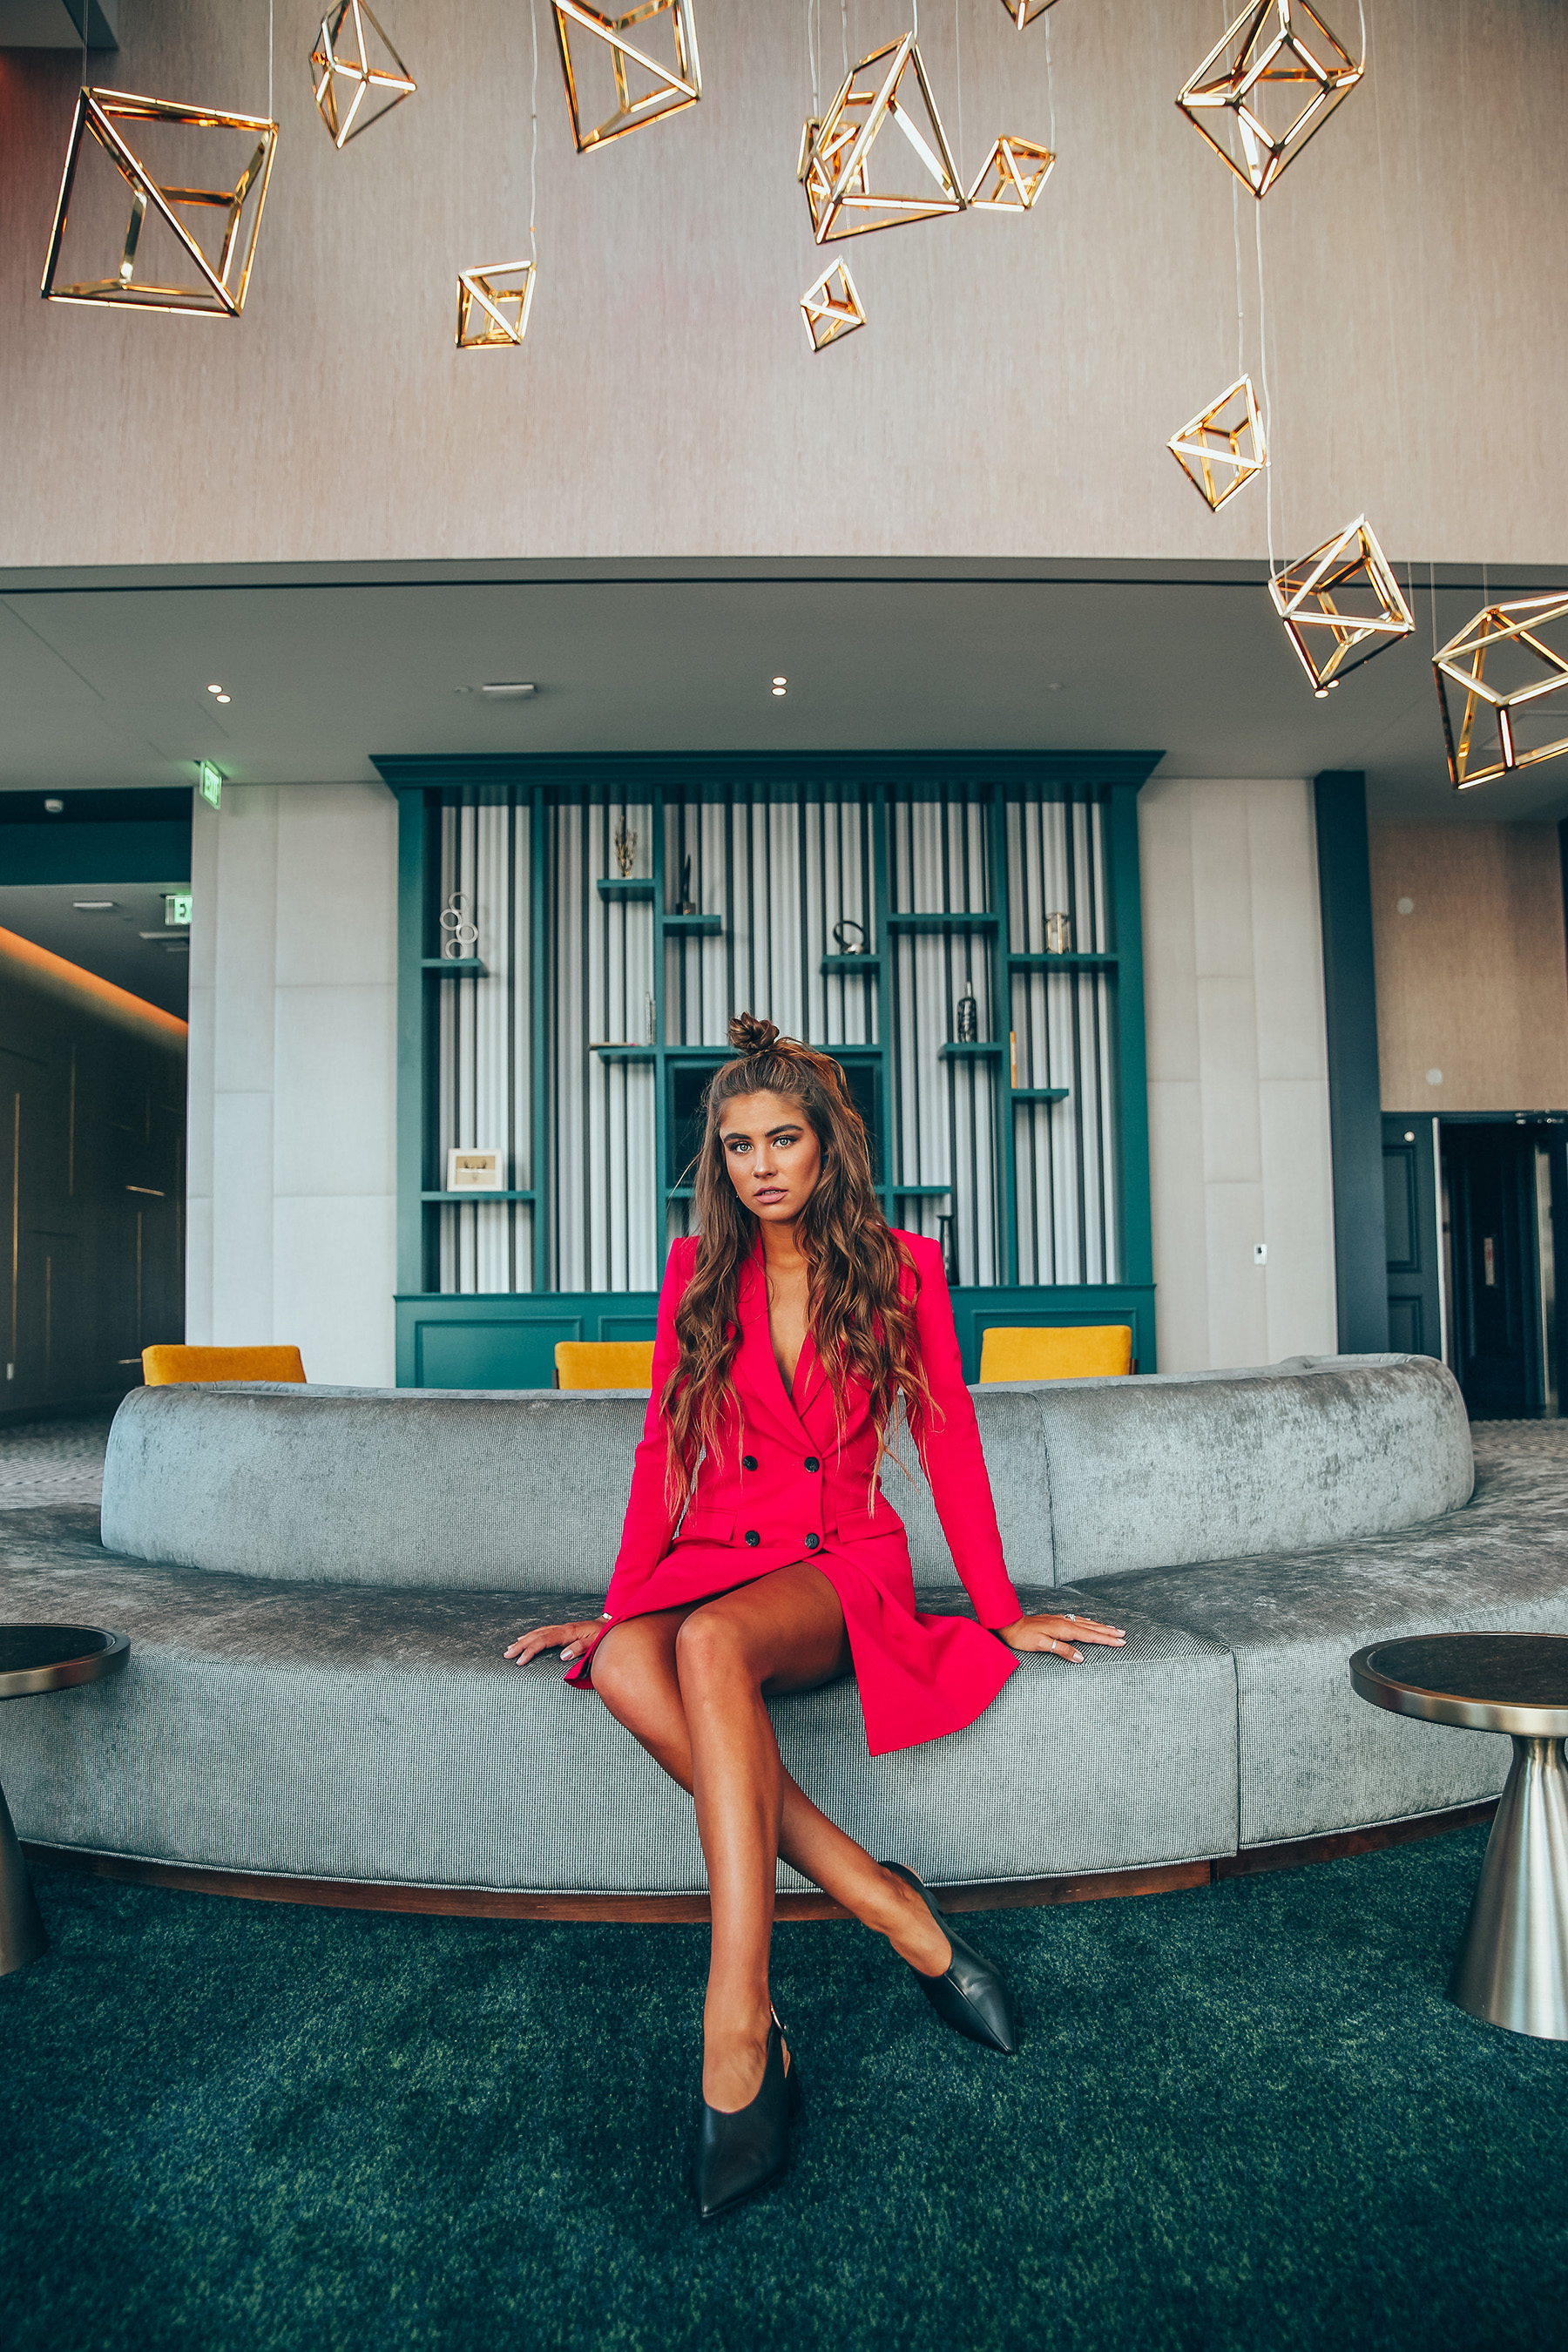 Influencer Jamie Kidd, wearing ASOS x Hotel Indigo Edits, waits for her ride in the Hotel Indigo Los Angeles Downtown lobby before heading out to experience the local neighborhood nightlife. Photo Credit: ASOS®